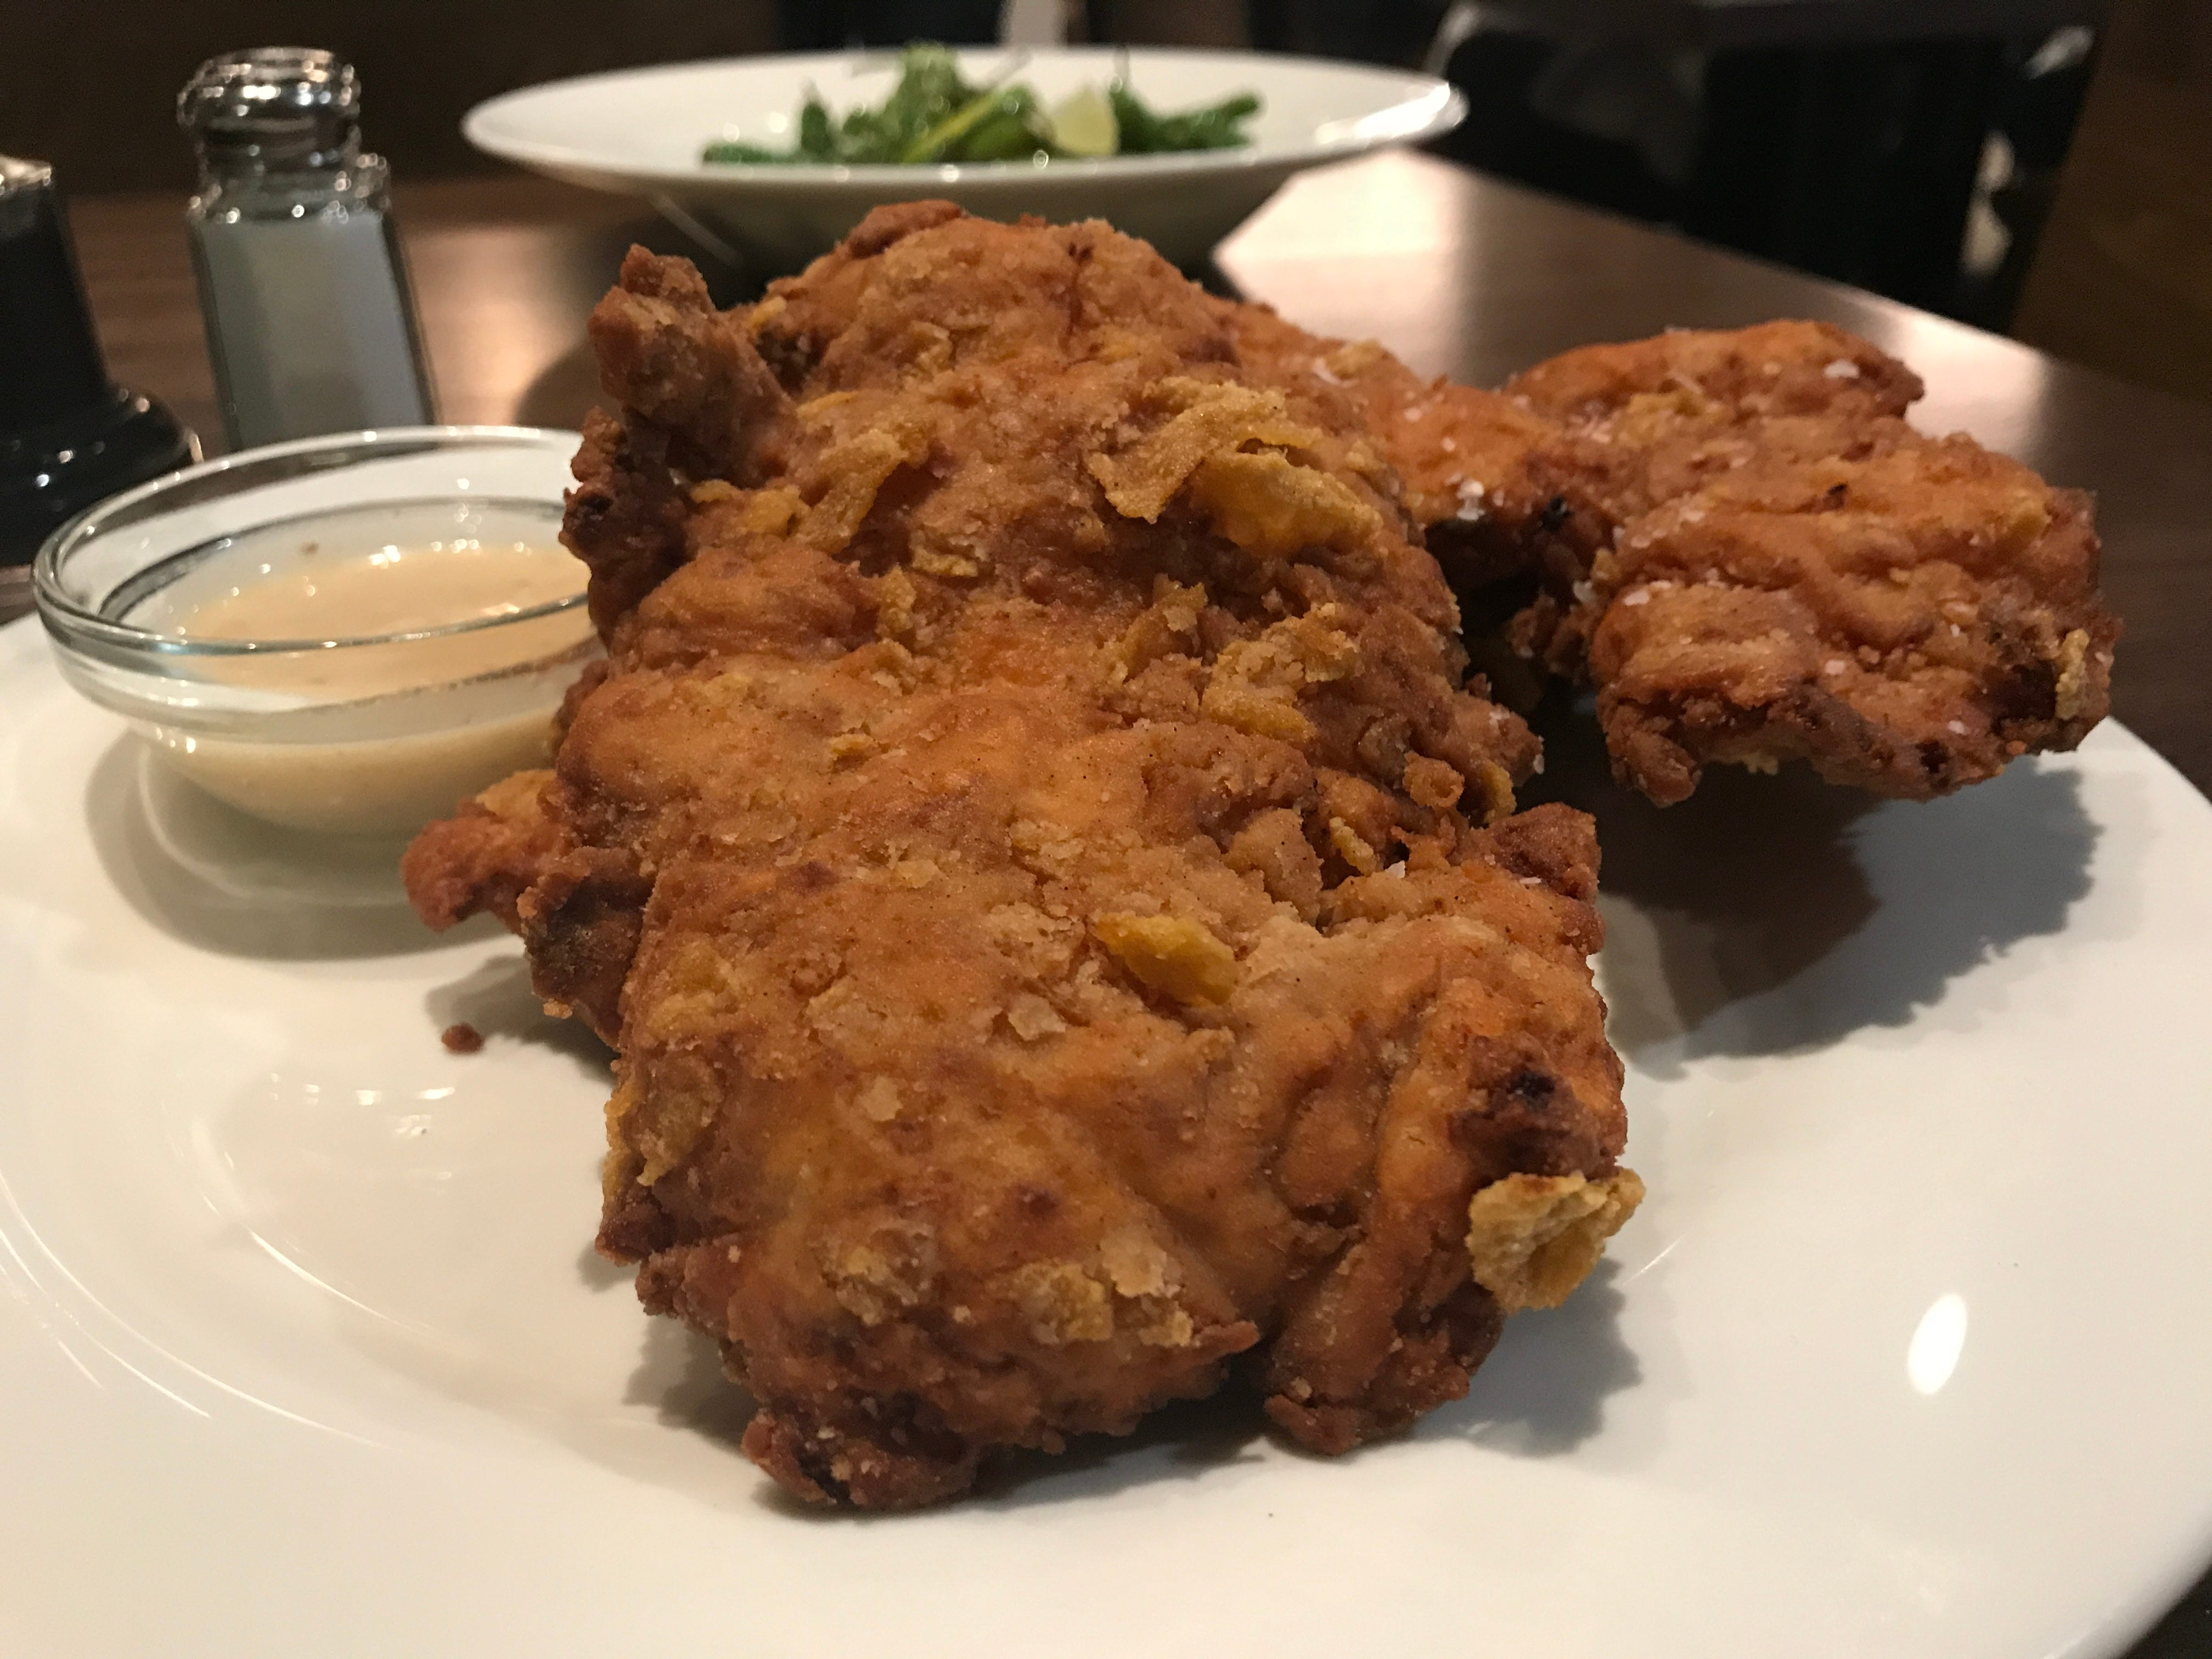 Corn flake-encrusted chicken tenders are the star of the show at Teddy Maroon's. You can order it as an appetizer, sandwich, on a salad or as an entree.